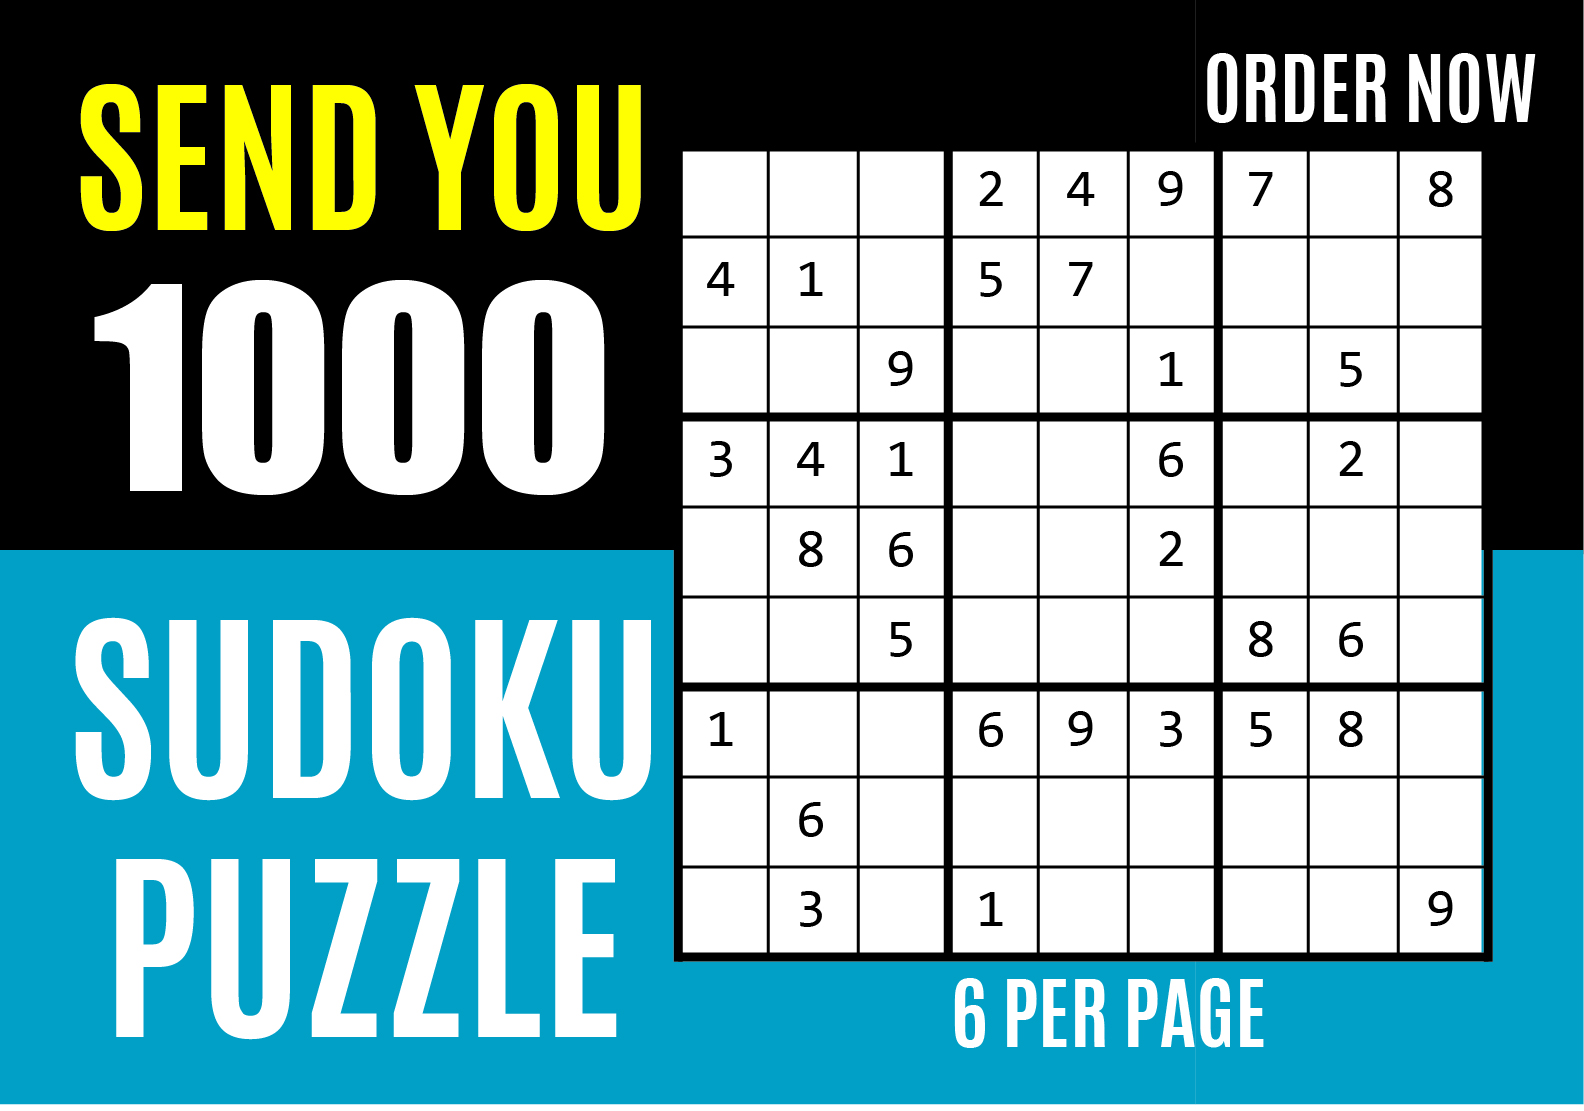 I will send you 1000 sudoku puzzles with solution for Amazon kdp